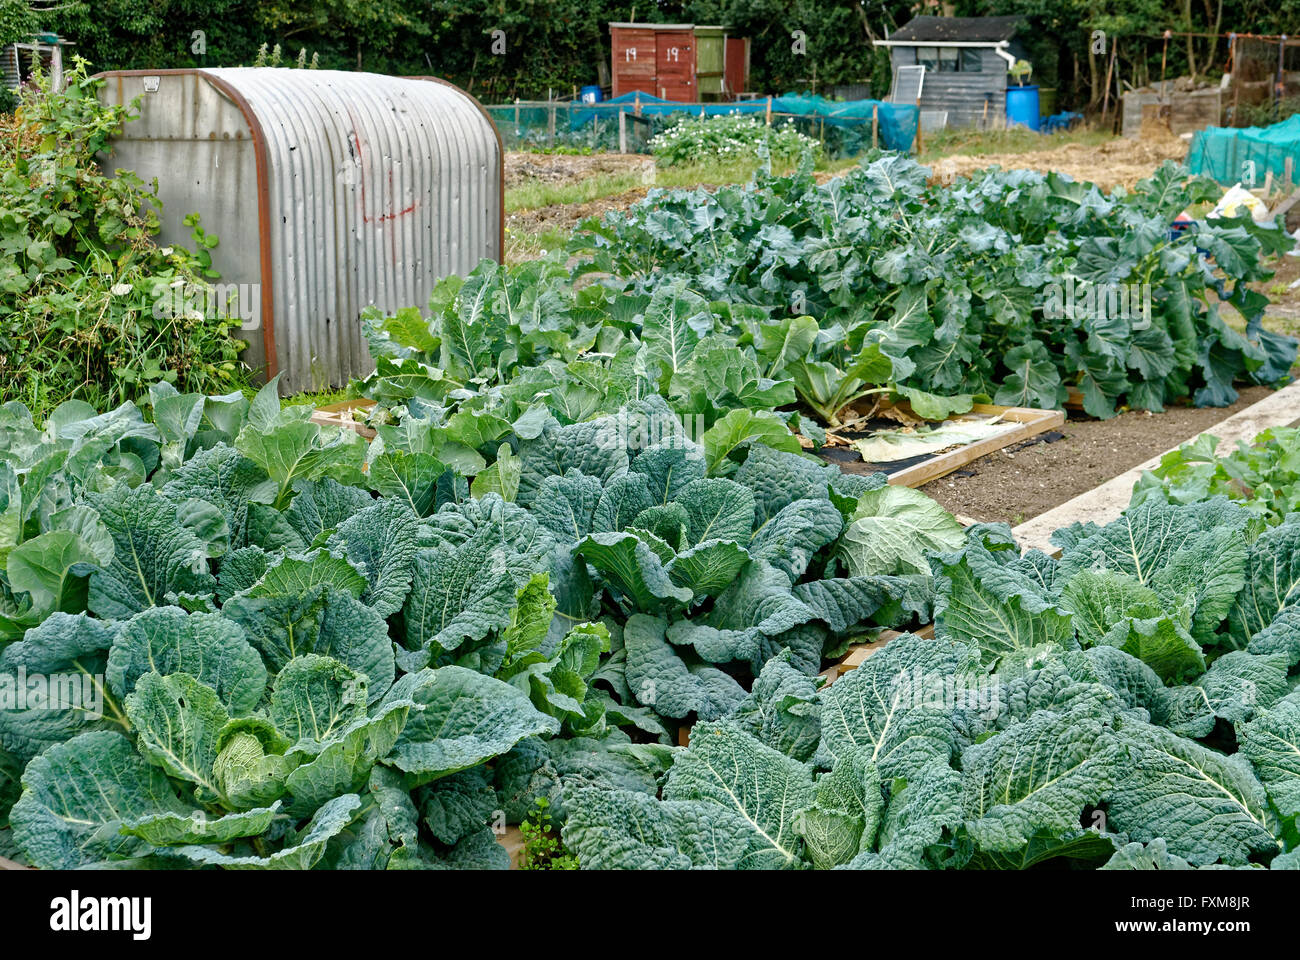 Allotment Gardening Fruit Vegetables Home Grown Agriculture Stock